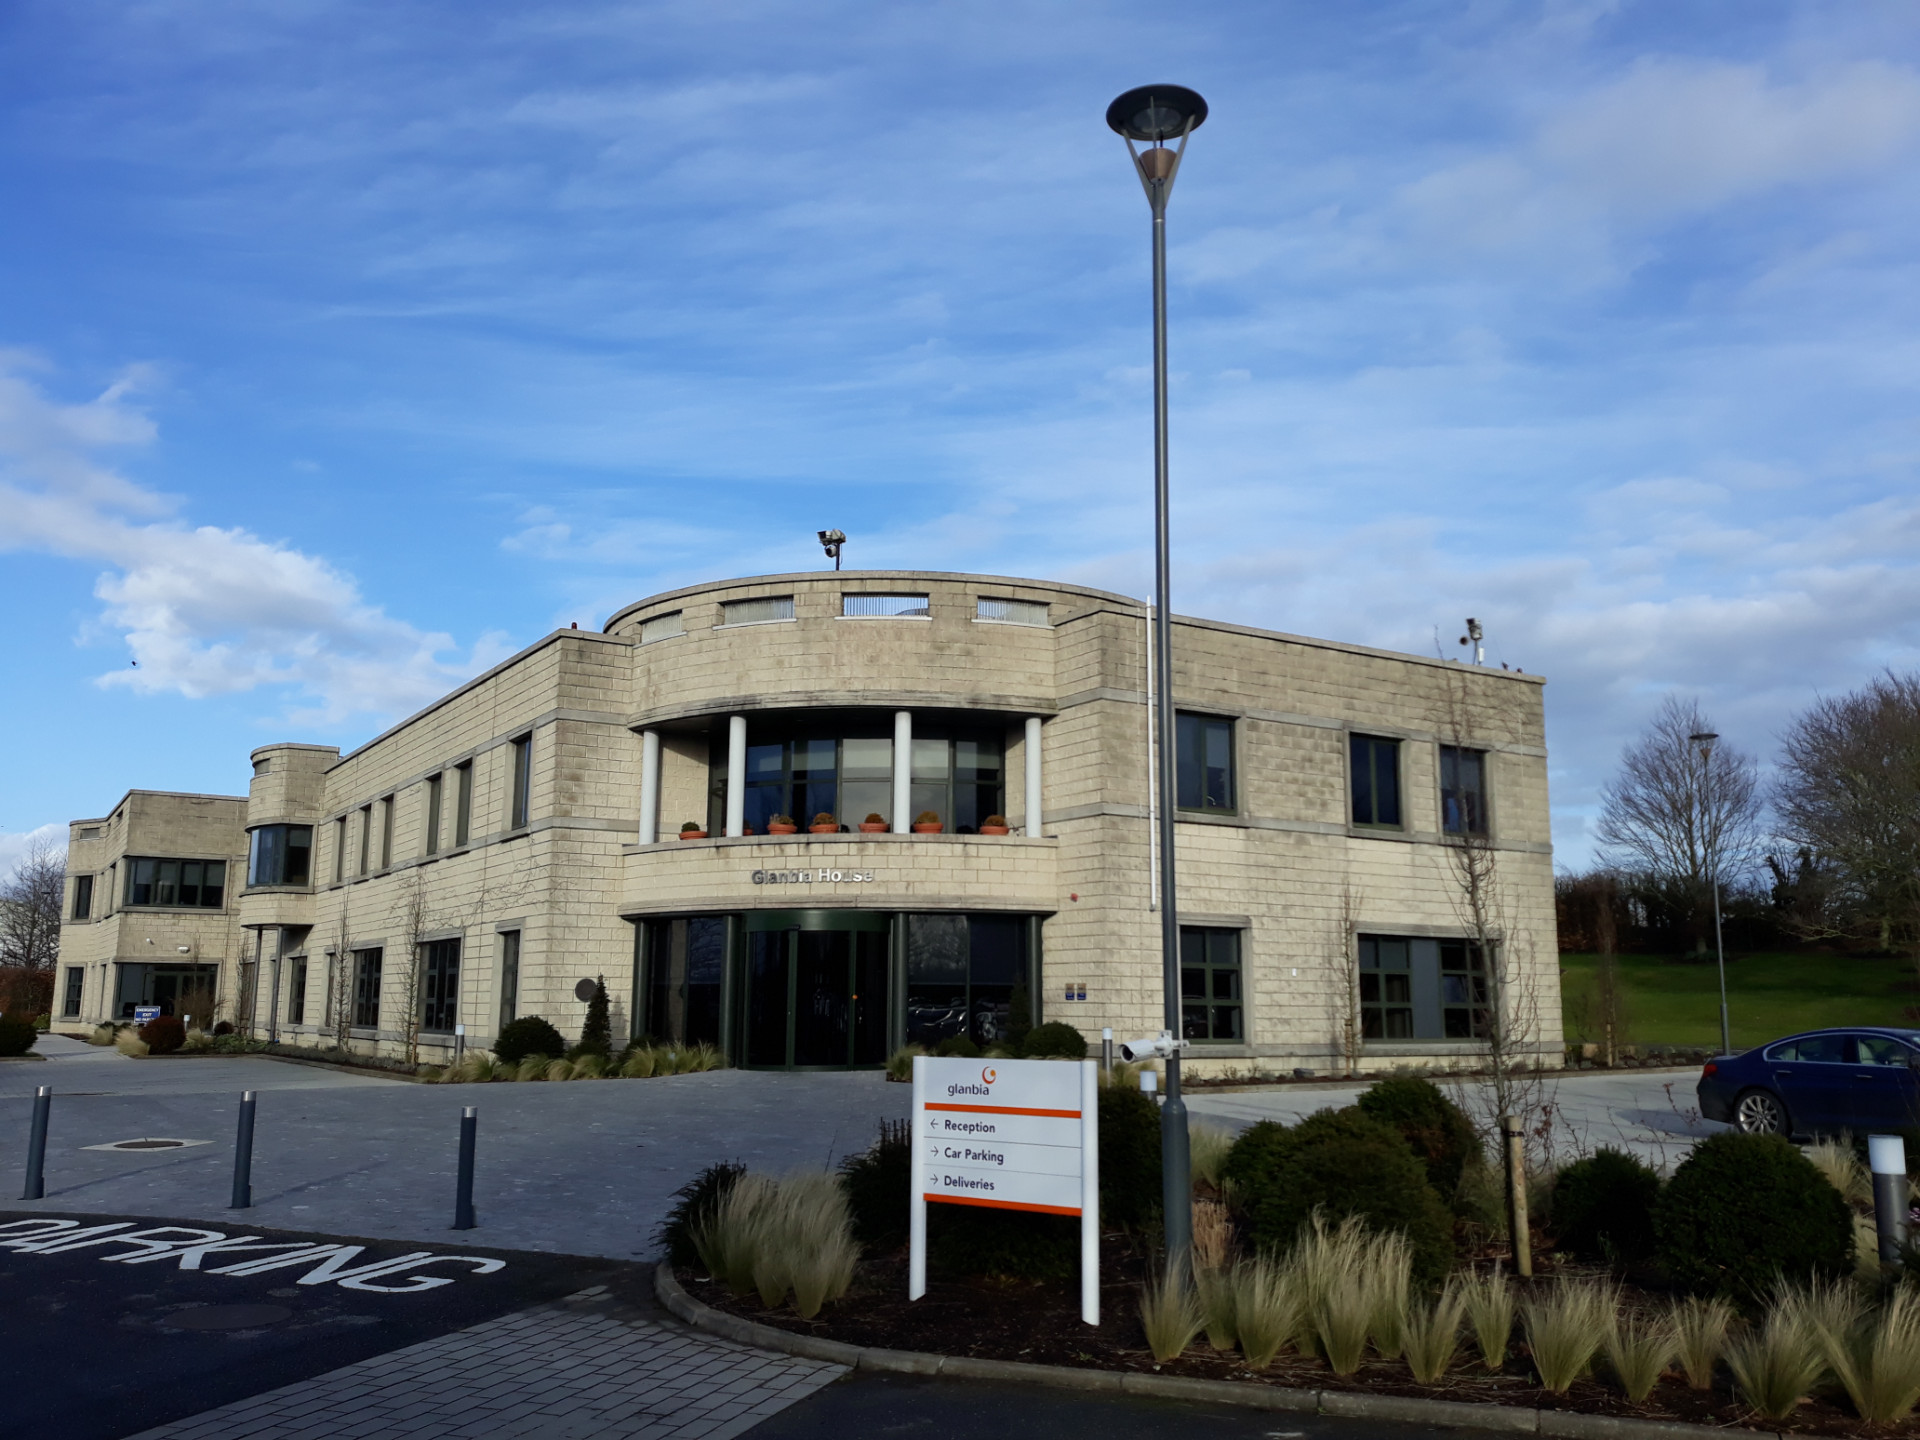 Glanbia House